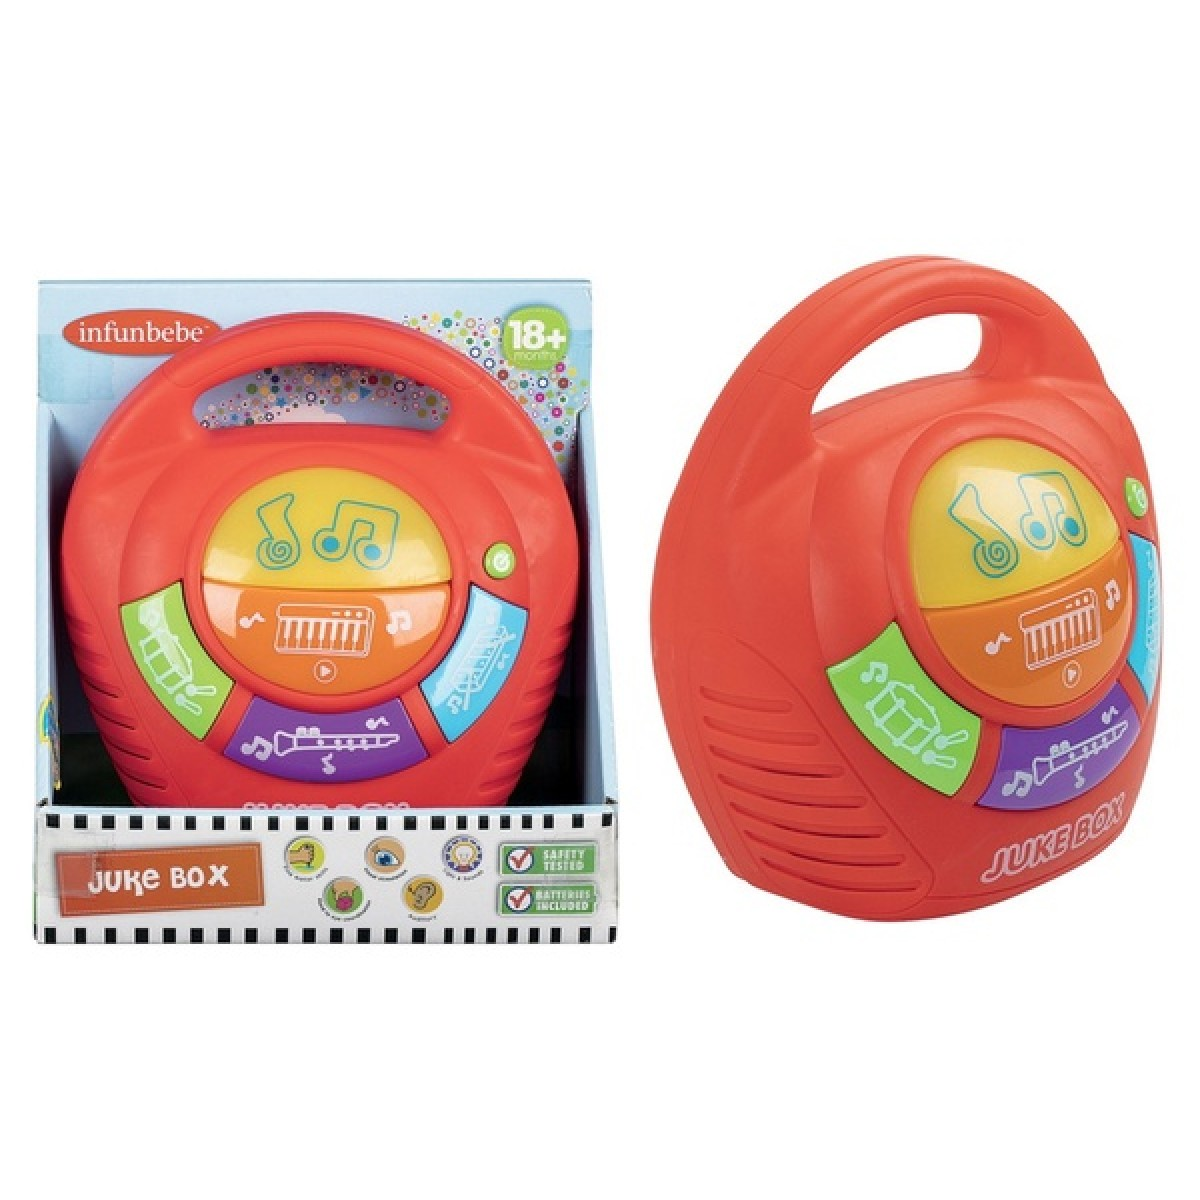 Infunbebe Juke Box Toy for Baby 12m+